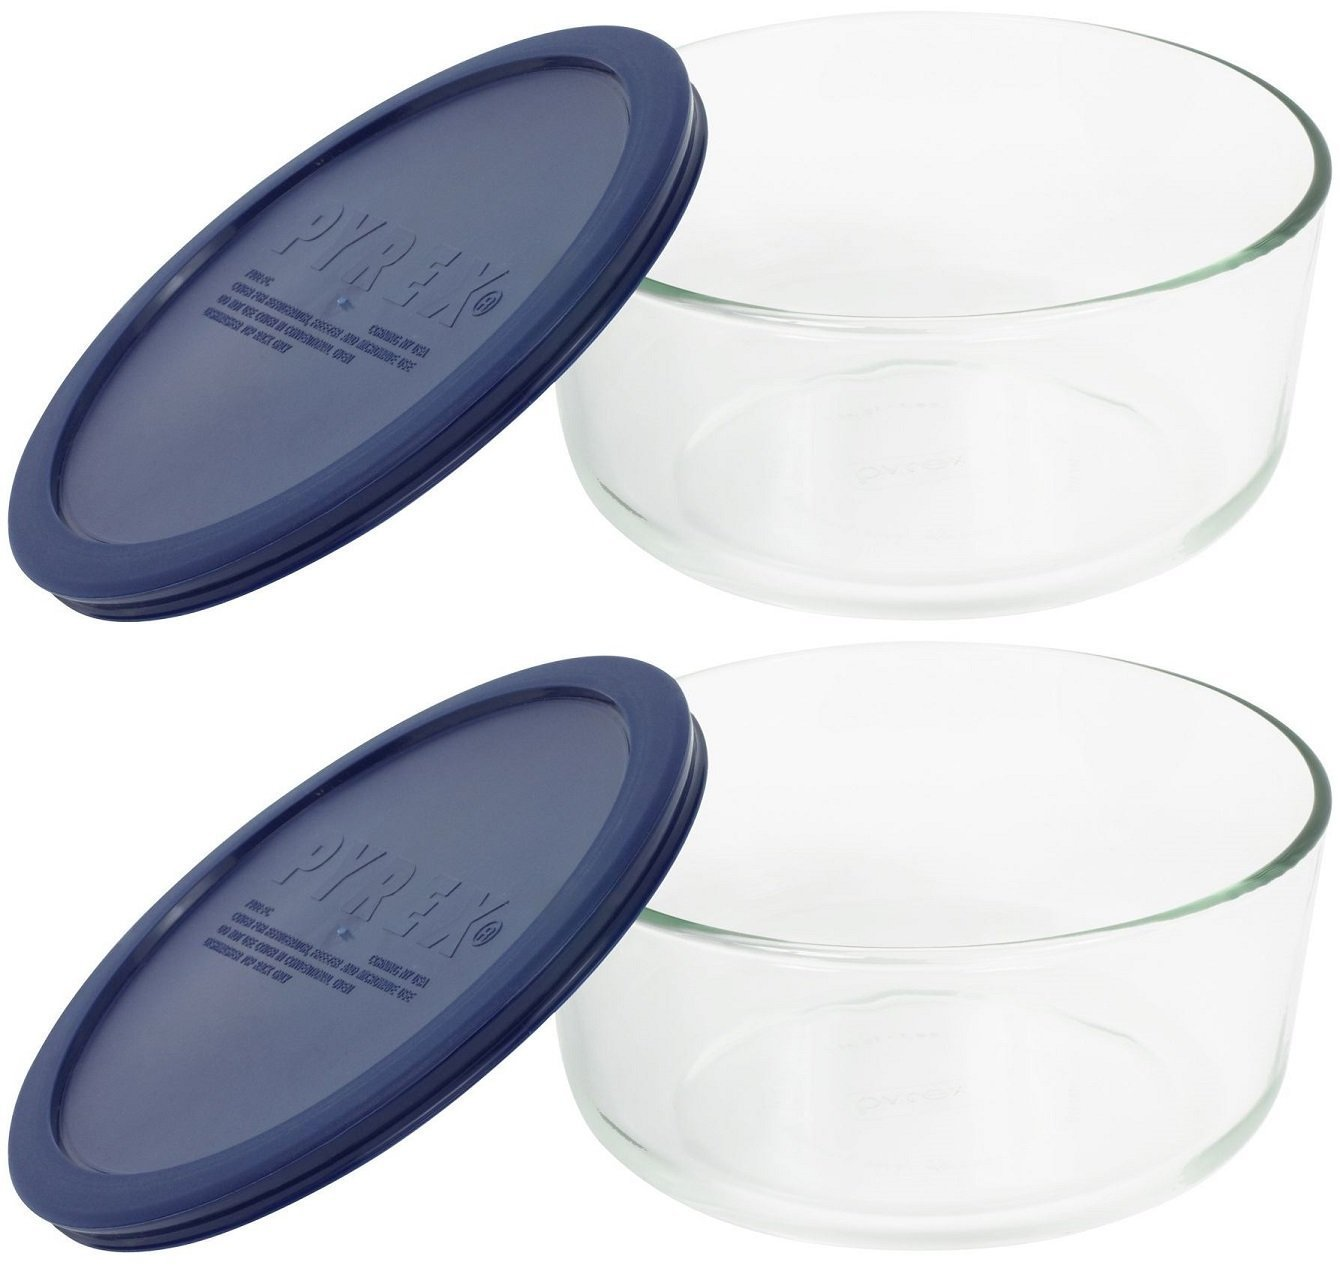 Pyrex Storage 4-Cup Round Dish with Dark Blue Plastic Cover, Clear (Pack of 2 Containers)